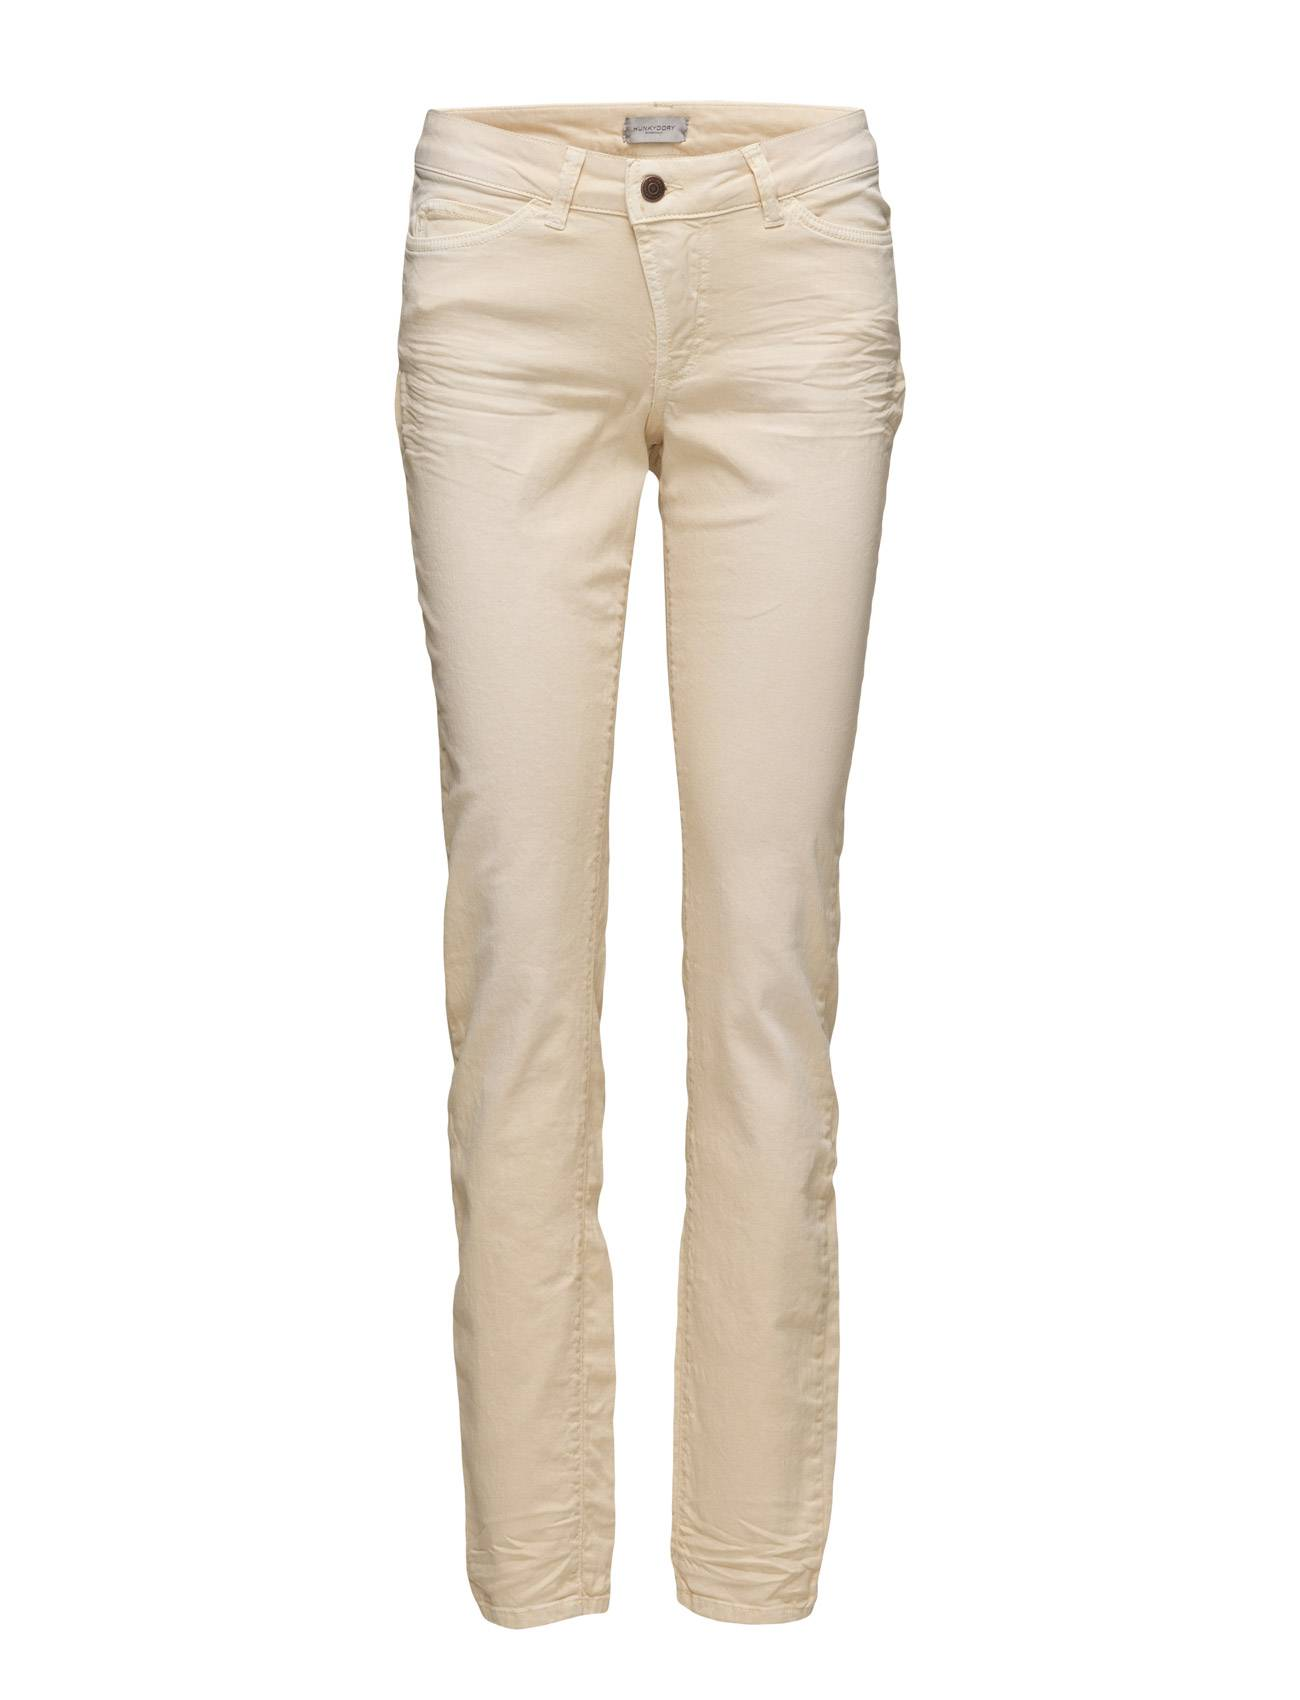 Hunkydory H.D Gmt Jeans